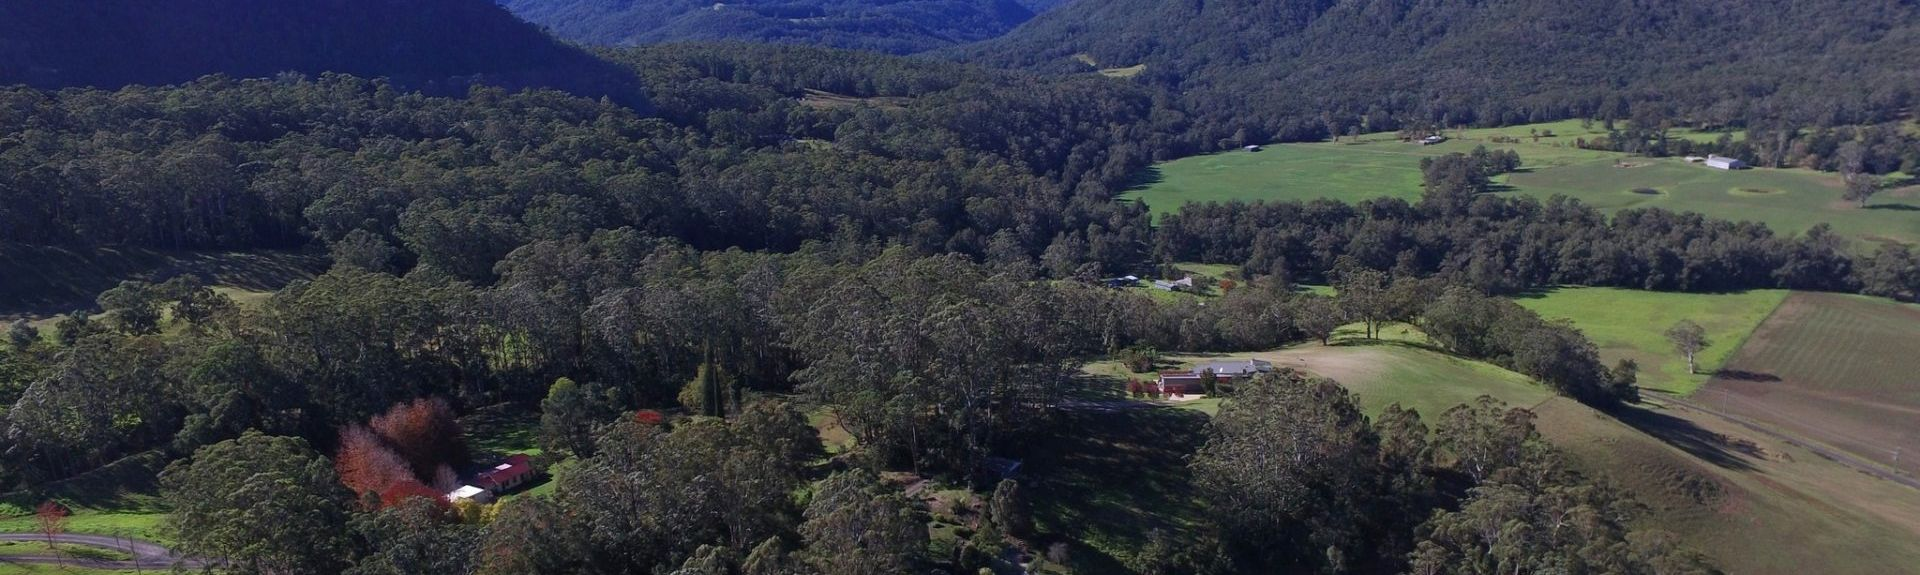 Jamberoo, New South Wales, Australia